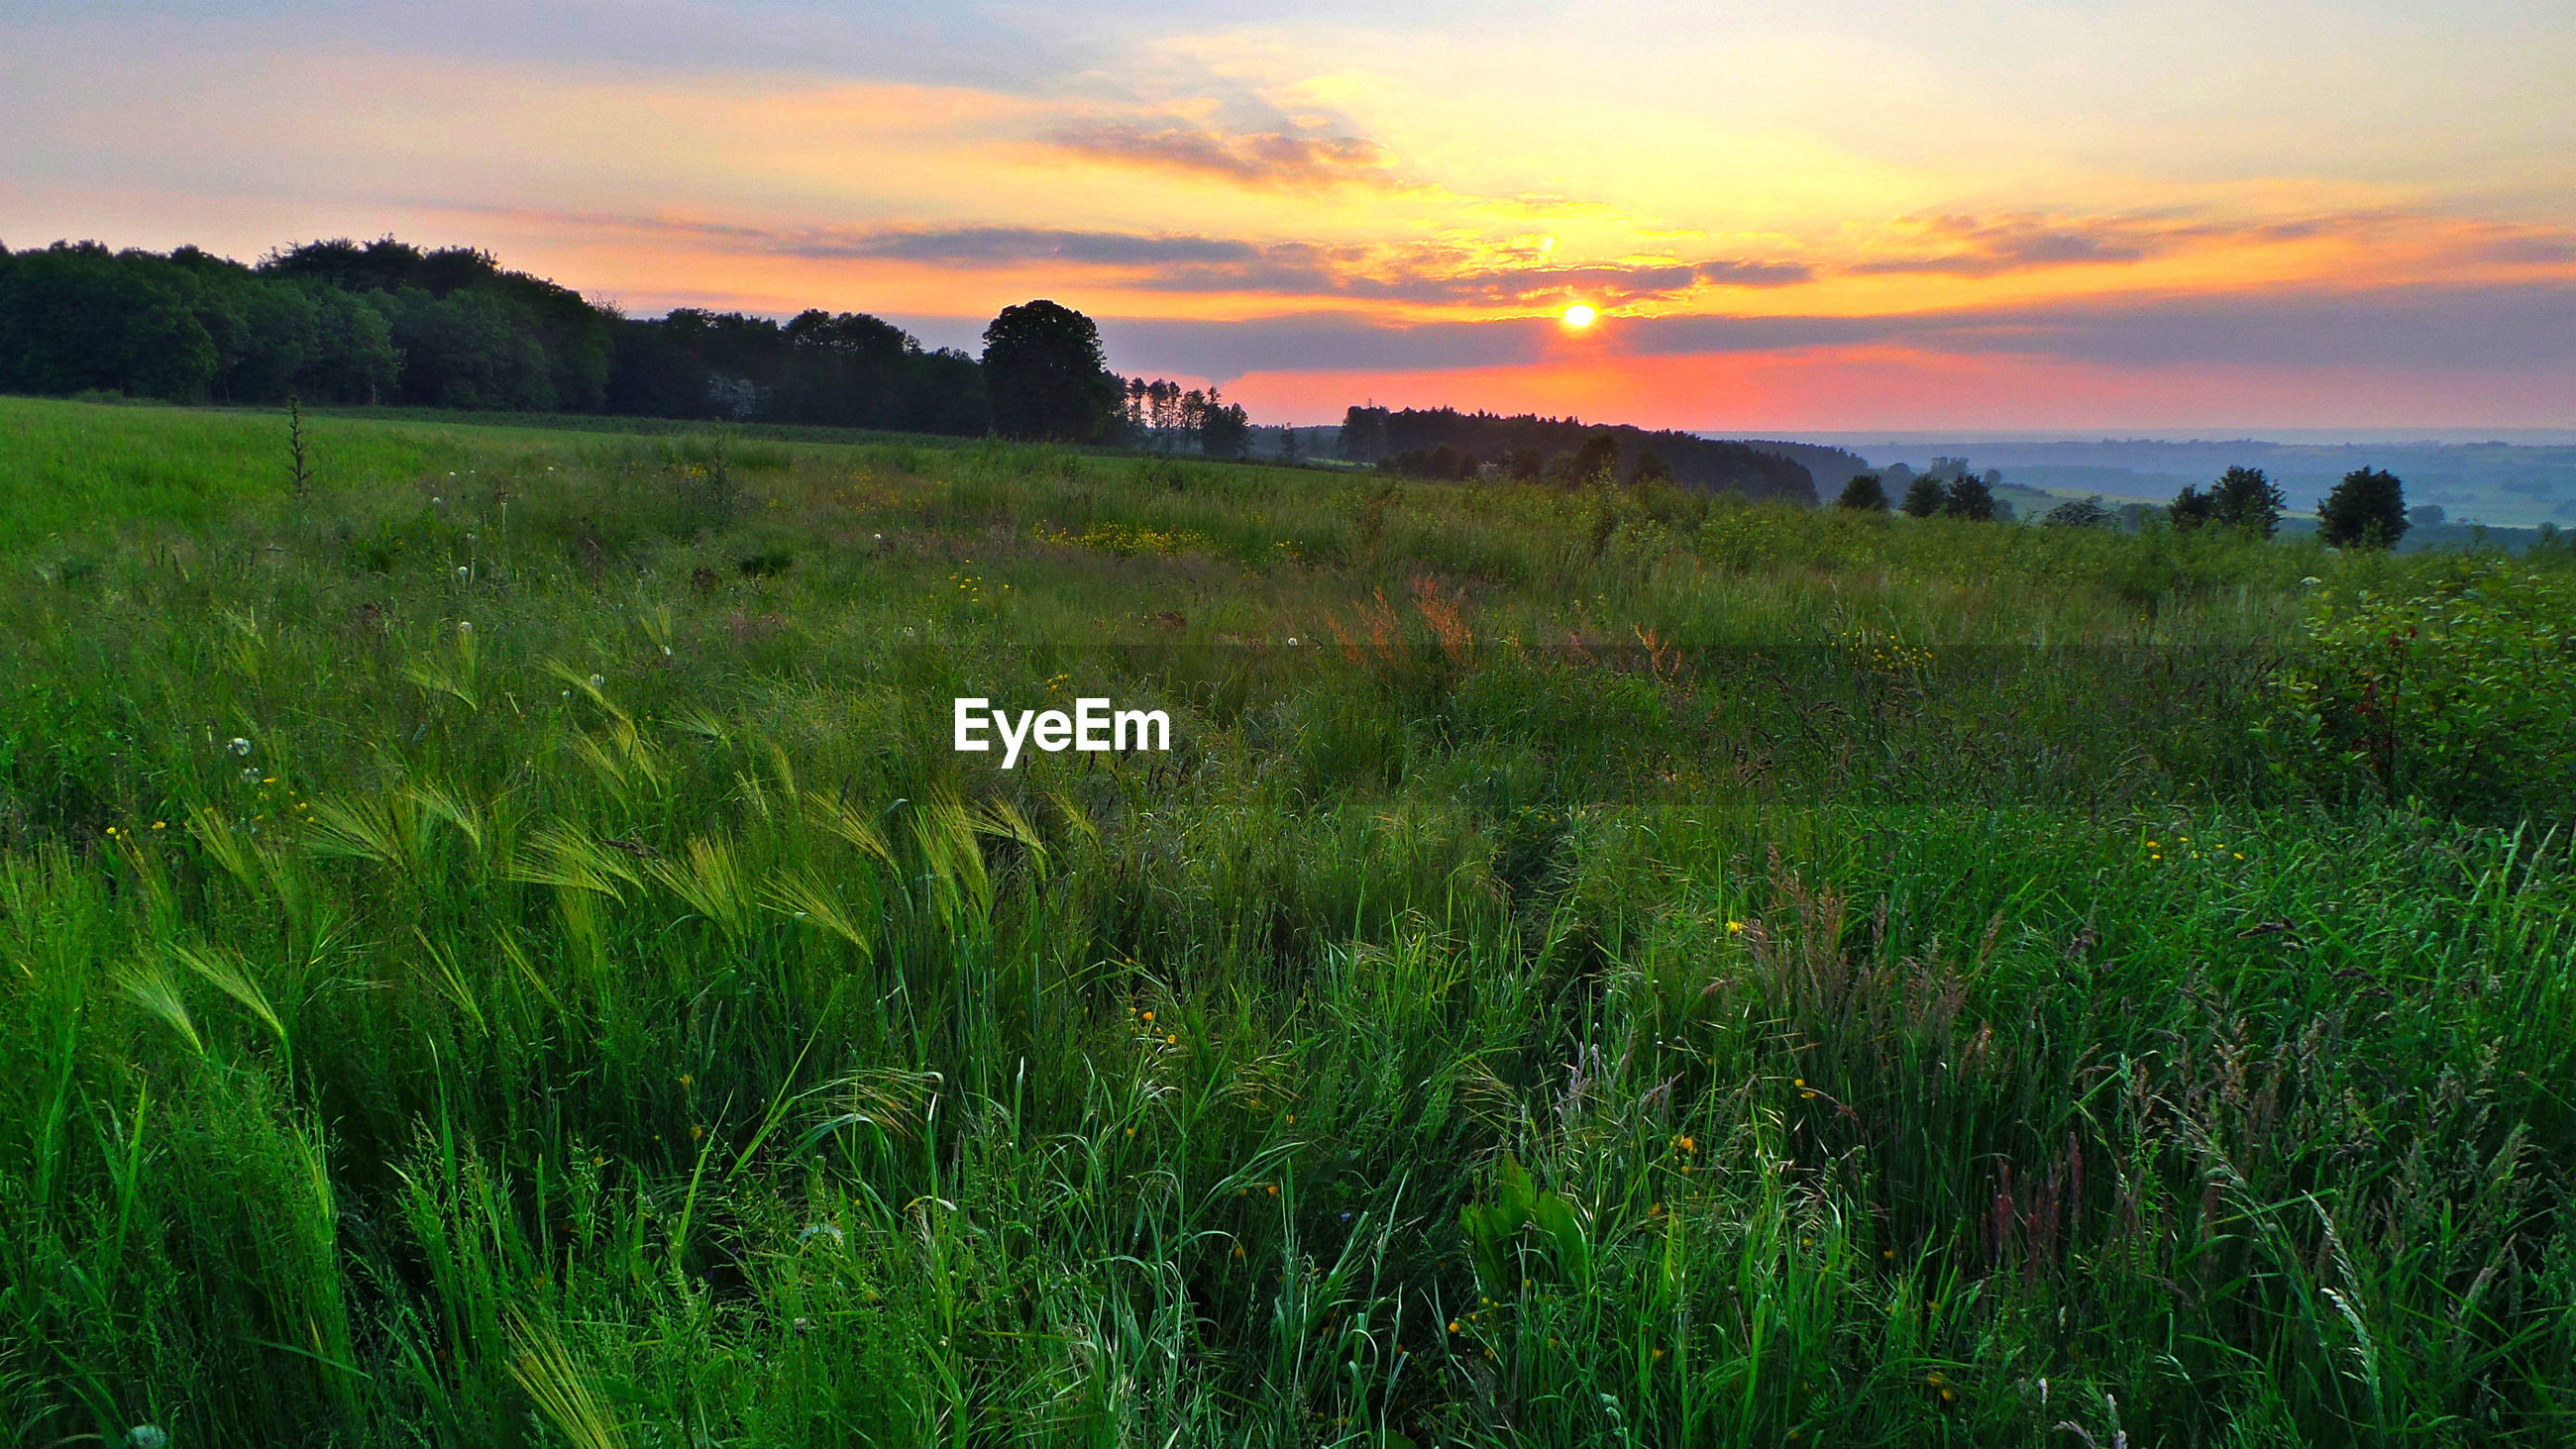 SCENIC VIEW OF LANDSCAPE DURING SUNSET